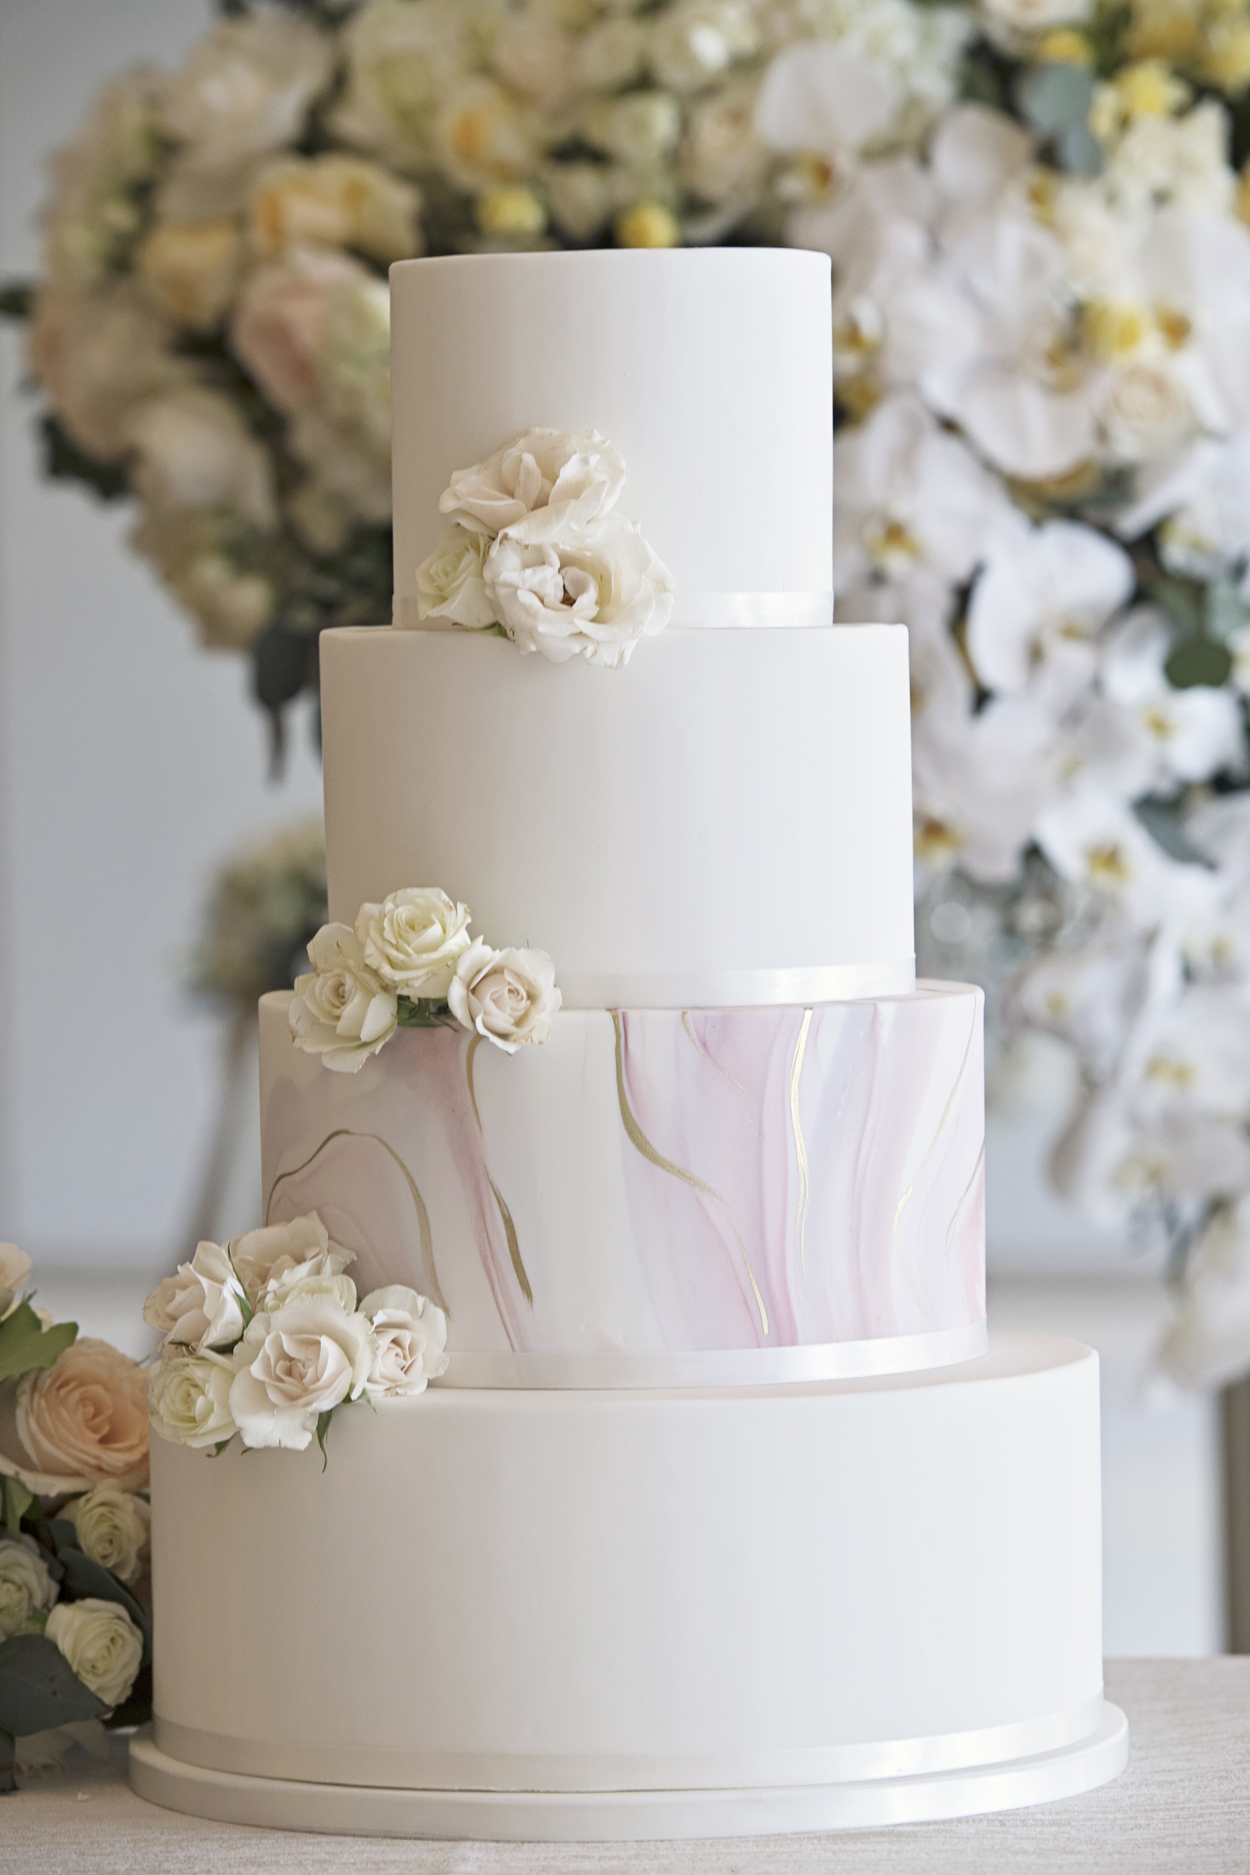 Pretty wedding cake with fondant layers and marble tier fresh flowers